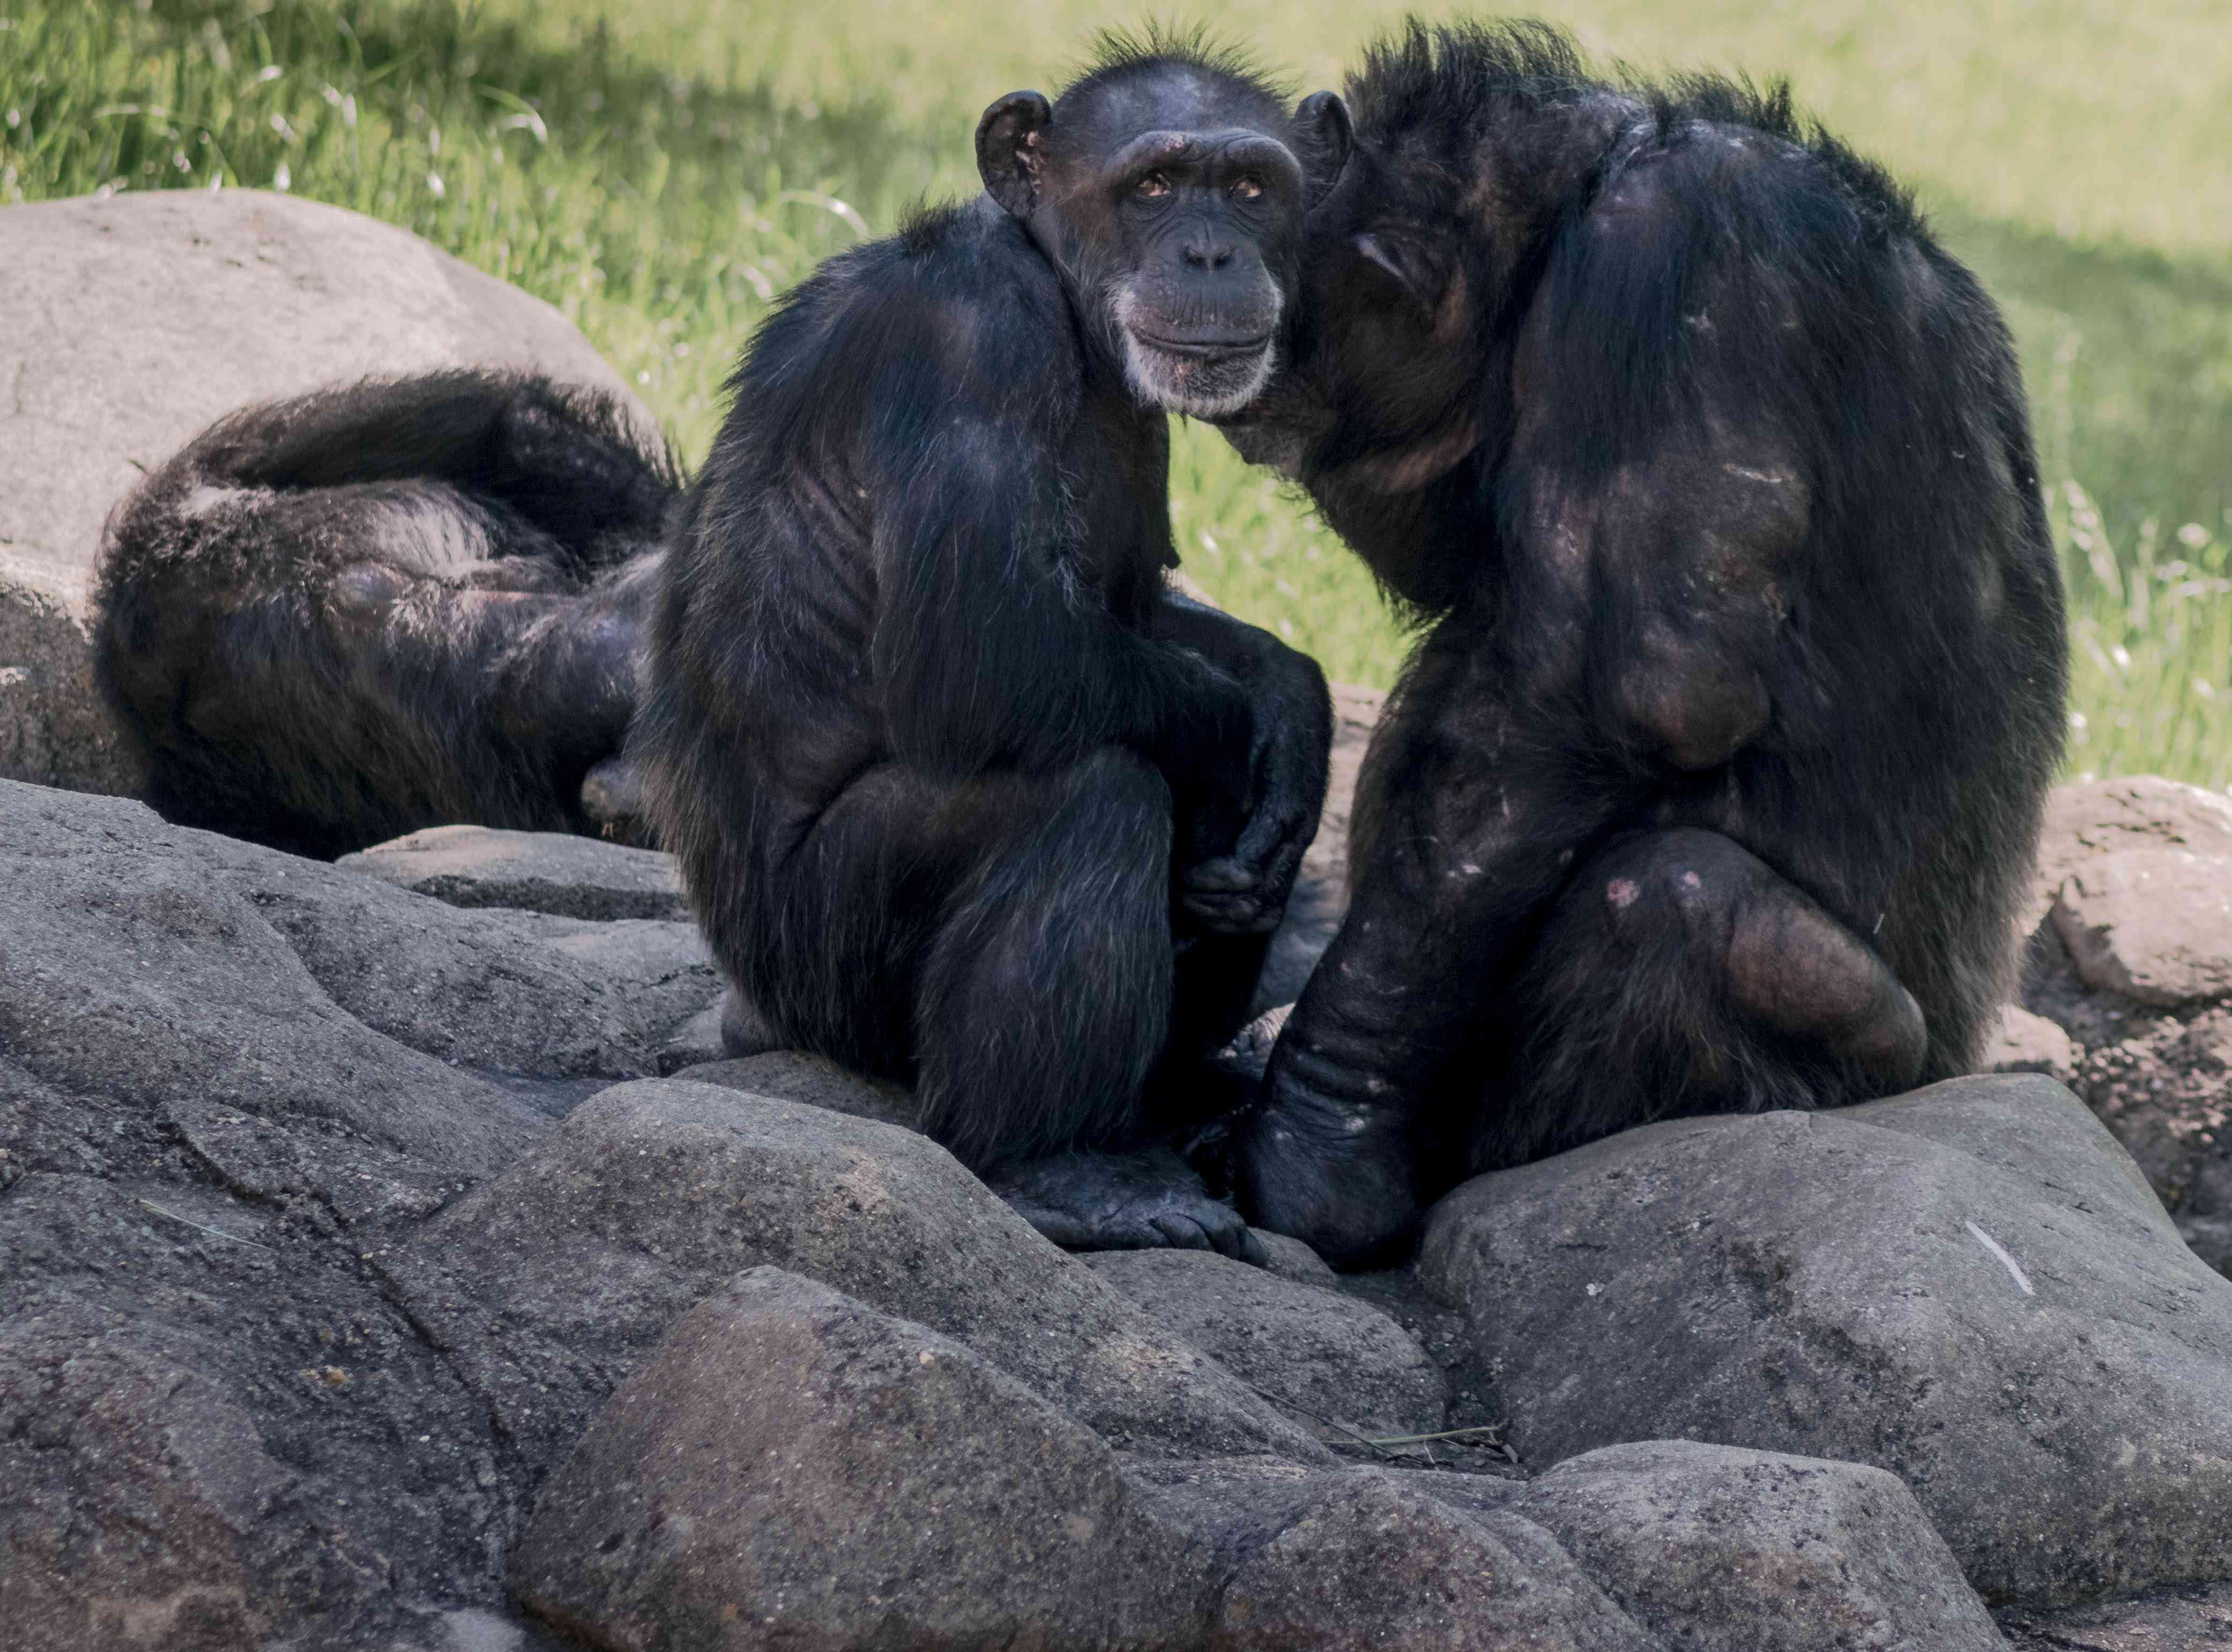 Close-Up Of Chimps Sitting On Rock